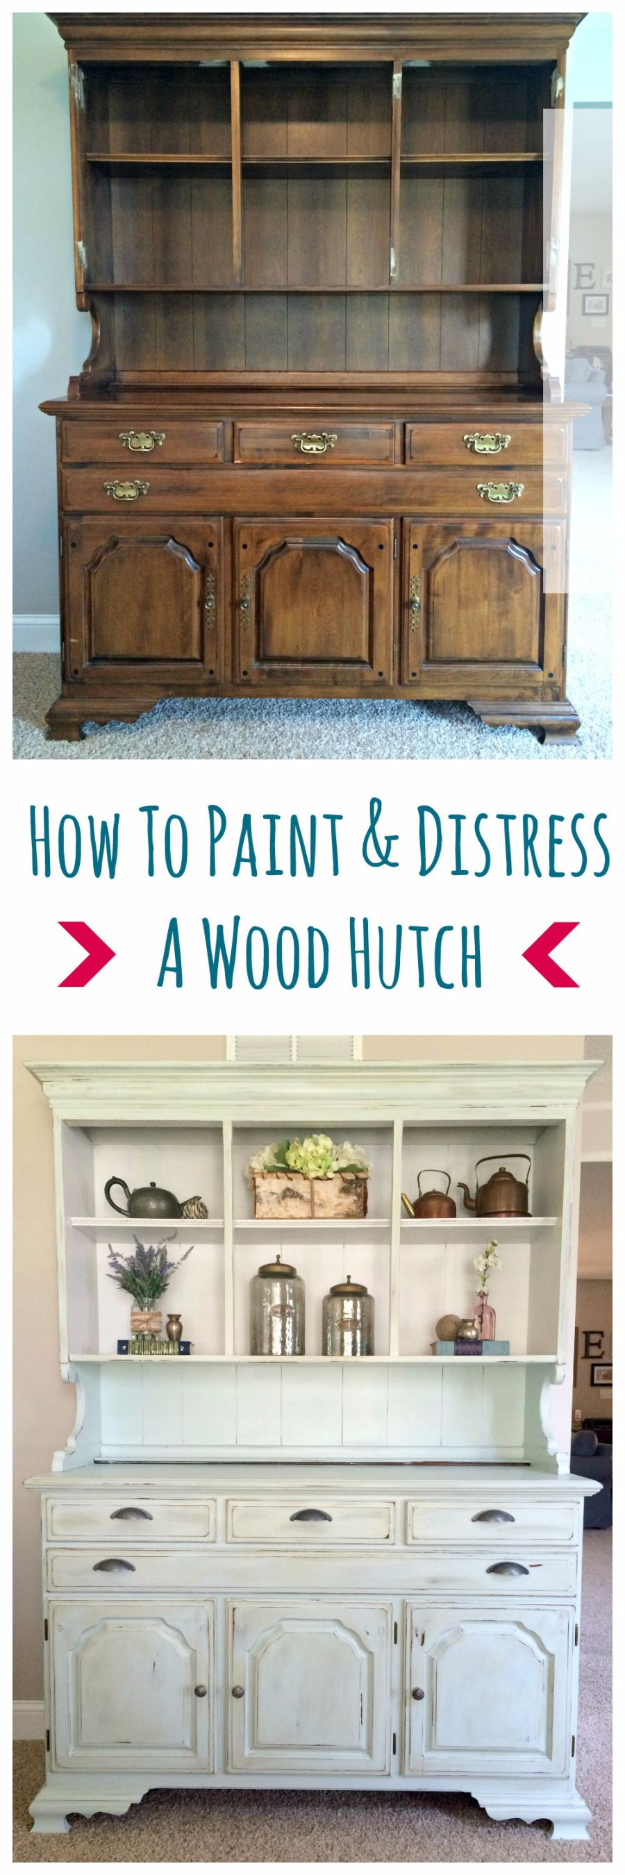 32 DIY Paint Techniques and Recipes - Paint And Distress A Wood Hutch - Cool Painting Ideas for Walls and Furniture - Awesome Tutorials for Stencil Projects and Easy Step By Step Tutorials for Painting Beautiful Backgrounds and Patterns. Modern, Vintage, Distressed and Classic Looks for Home, Living Room, Bedroom and More